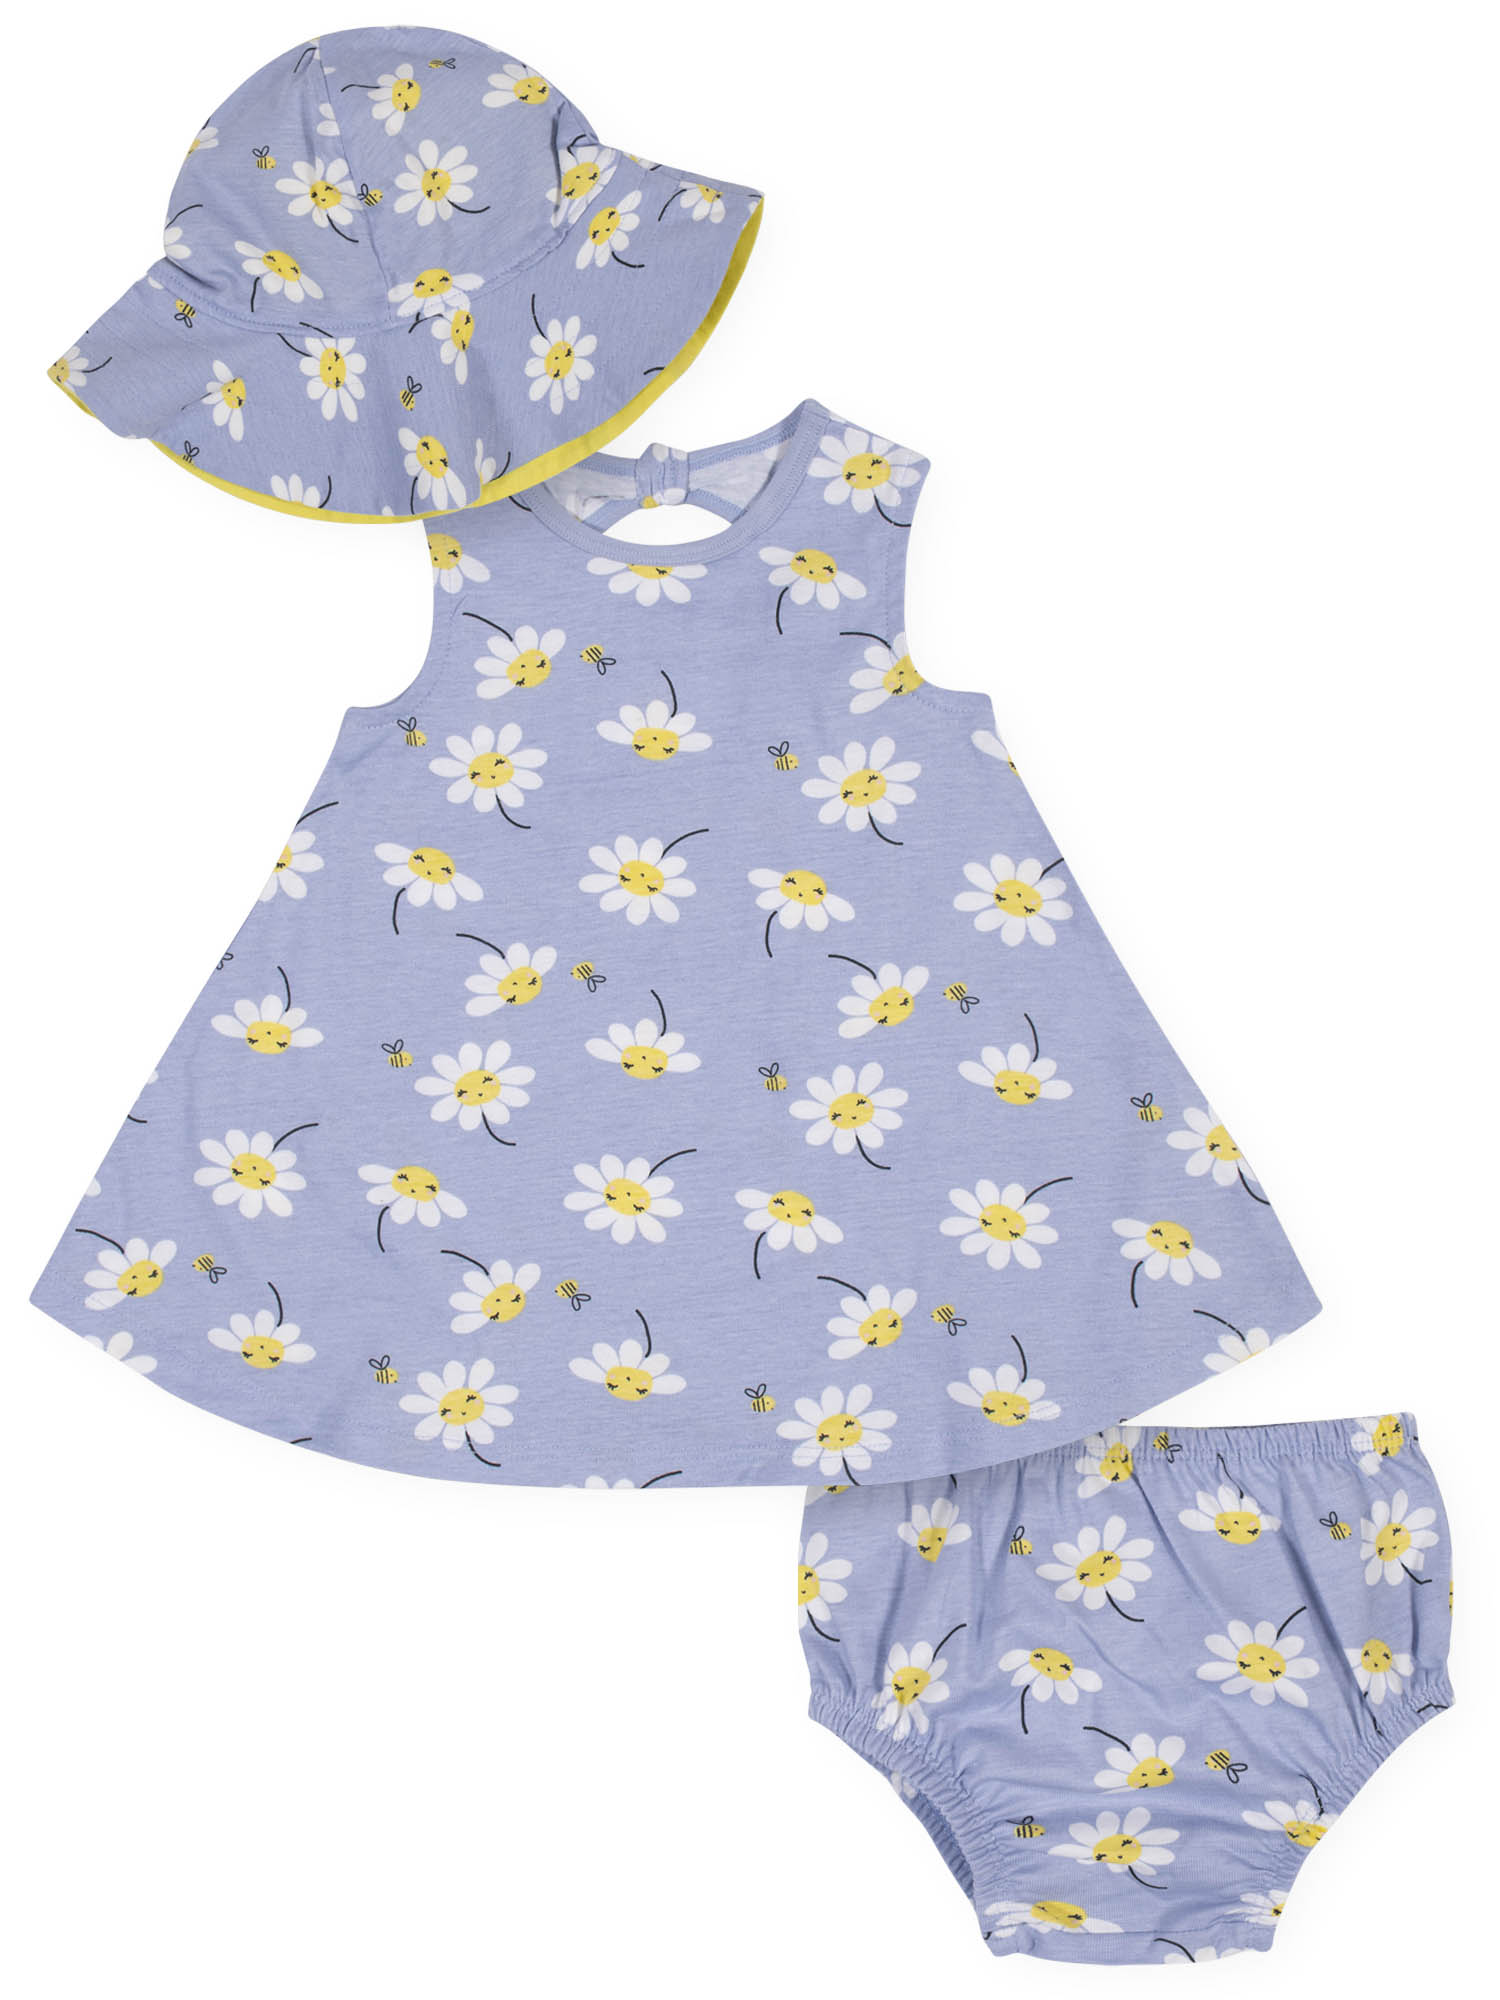 Baby Rompersuit Baby Jumpsuit Better Version of Mummy Baby Rompersuit with Feet SR Baby Sleepsuit Baby Romper